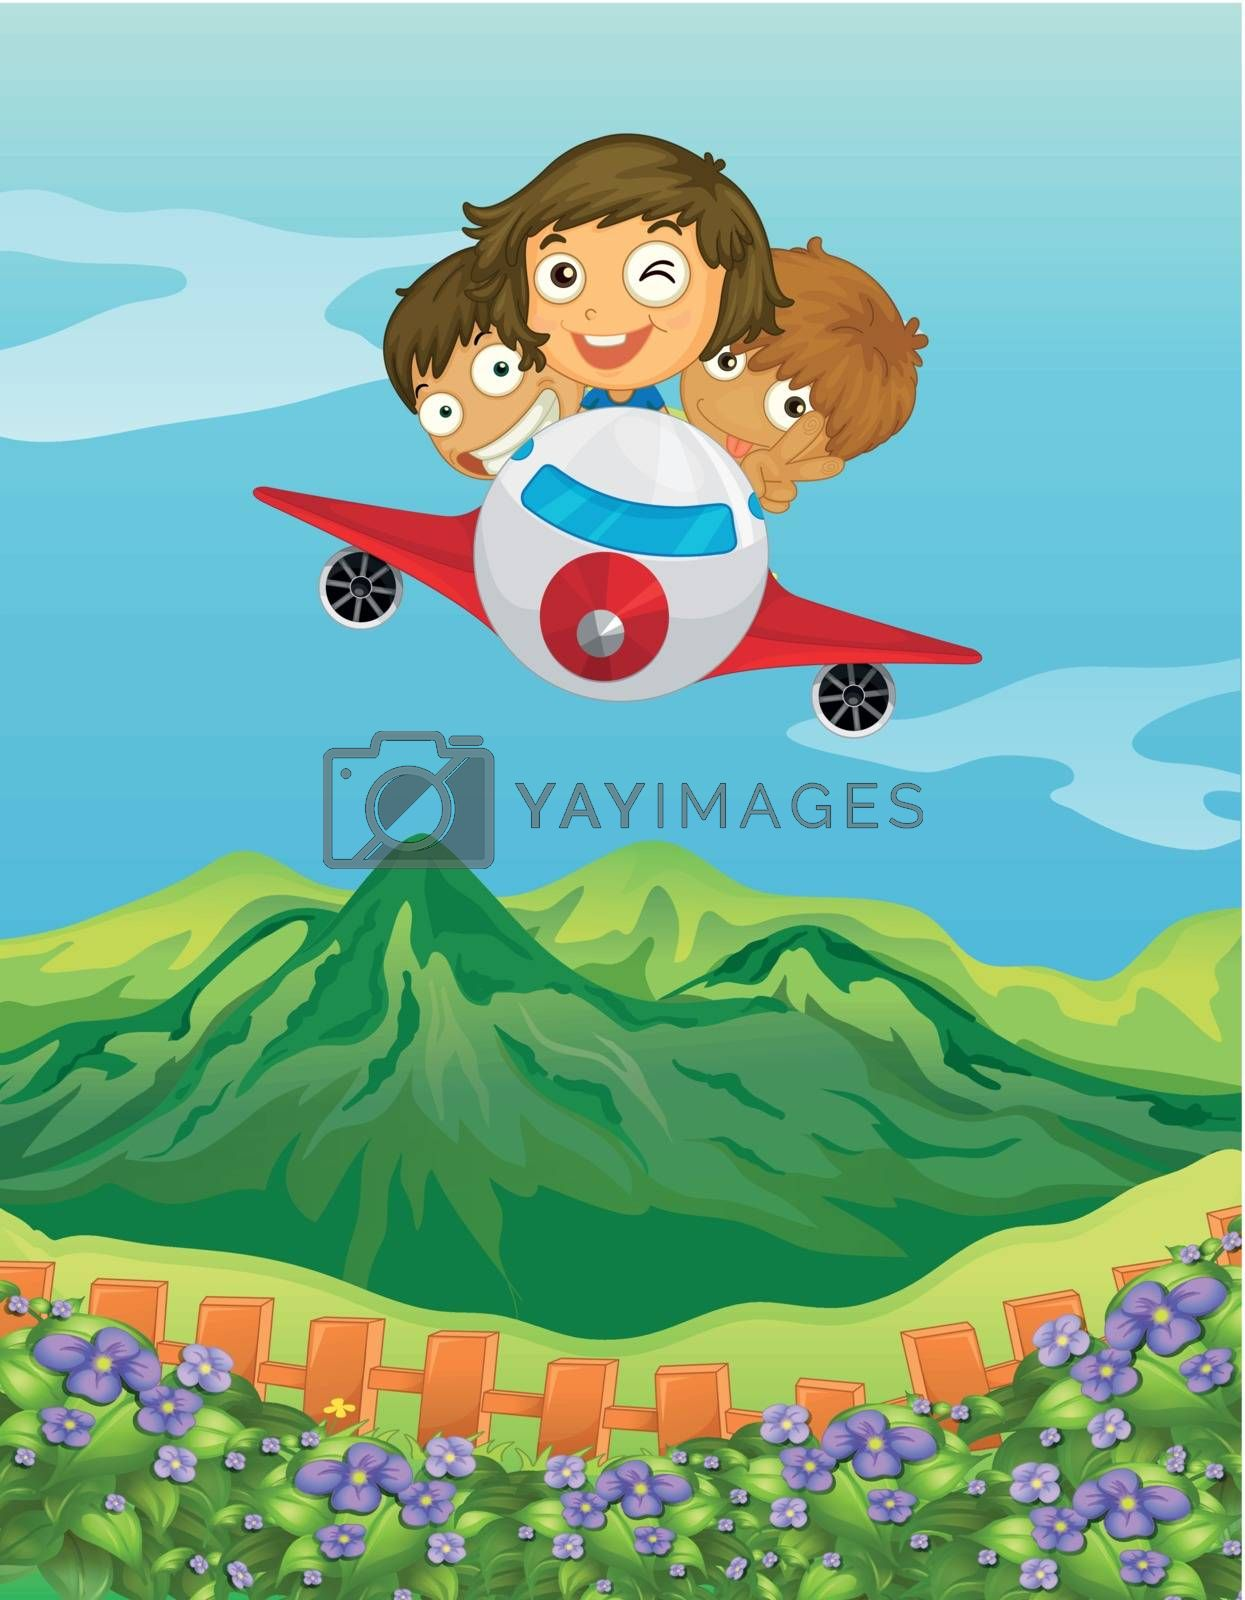 Illustration of kids and an airplane in a beautiful nature